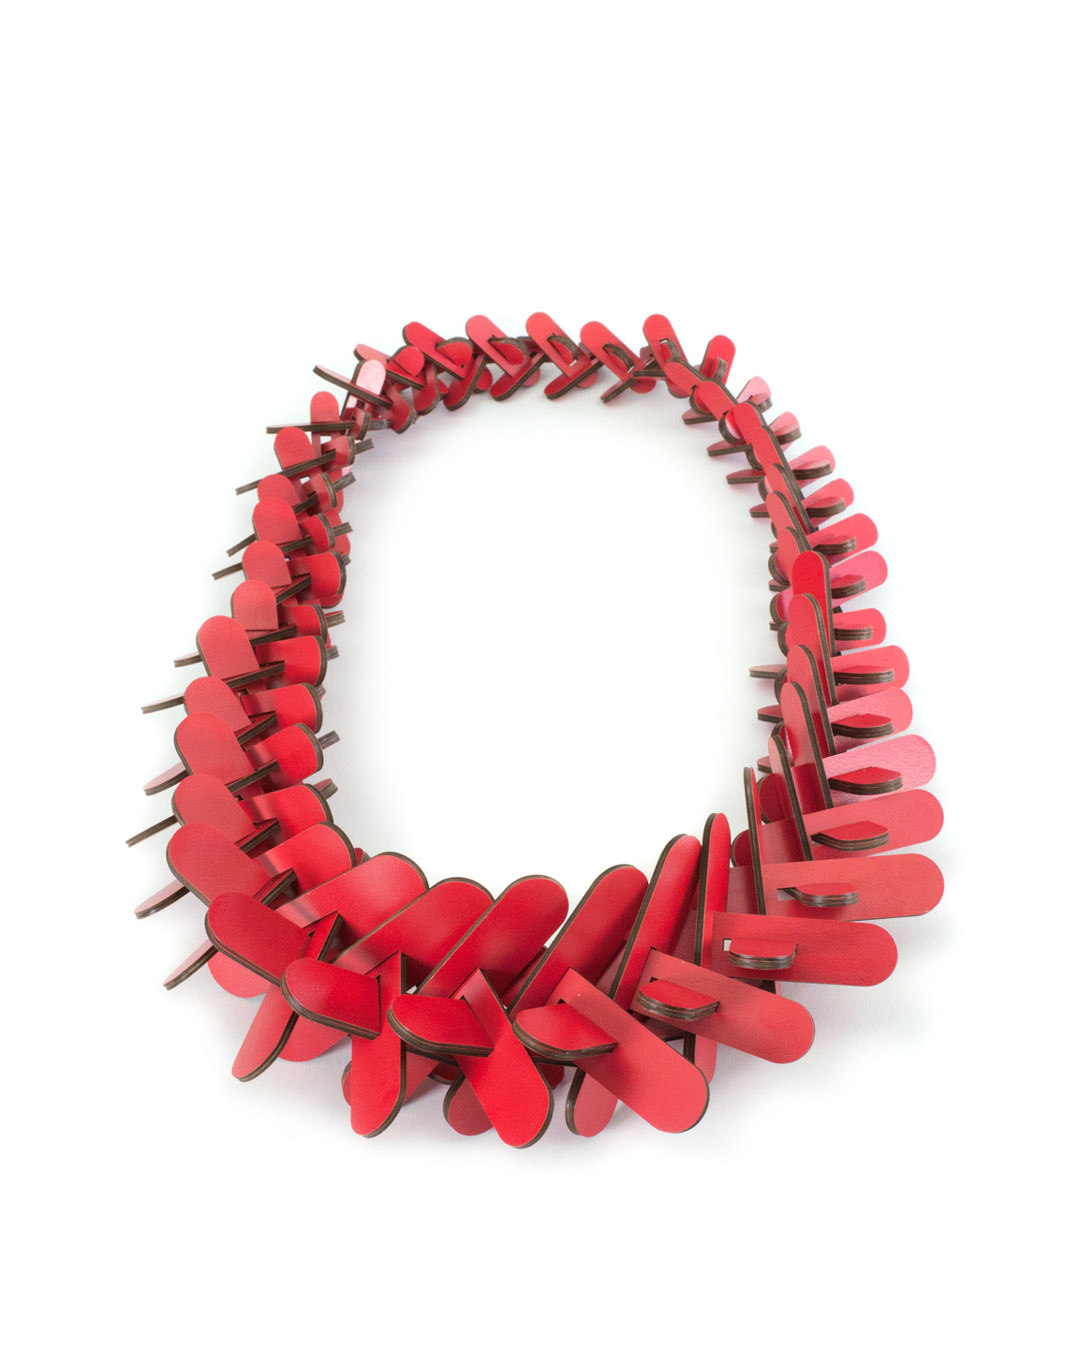 Rebecca Hannon, Tapered Crown-of-Thorns, 2016, neckpiece; laminate, 360 x 180 x 65 mm, €2910